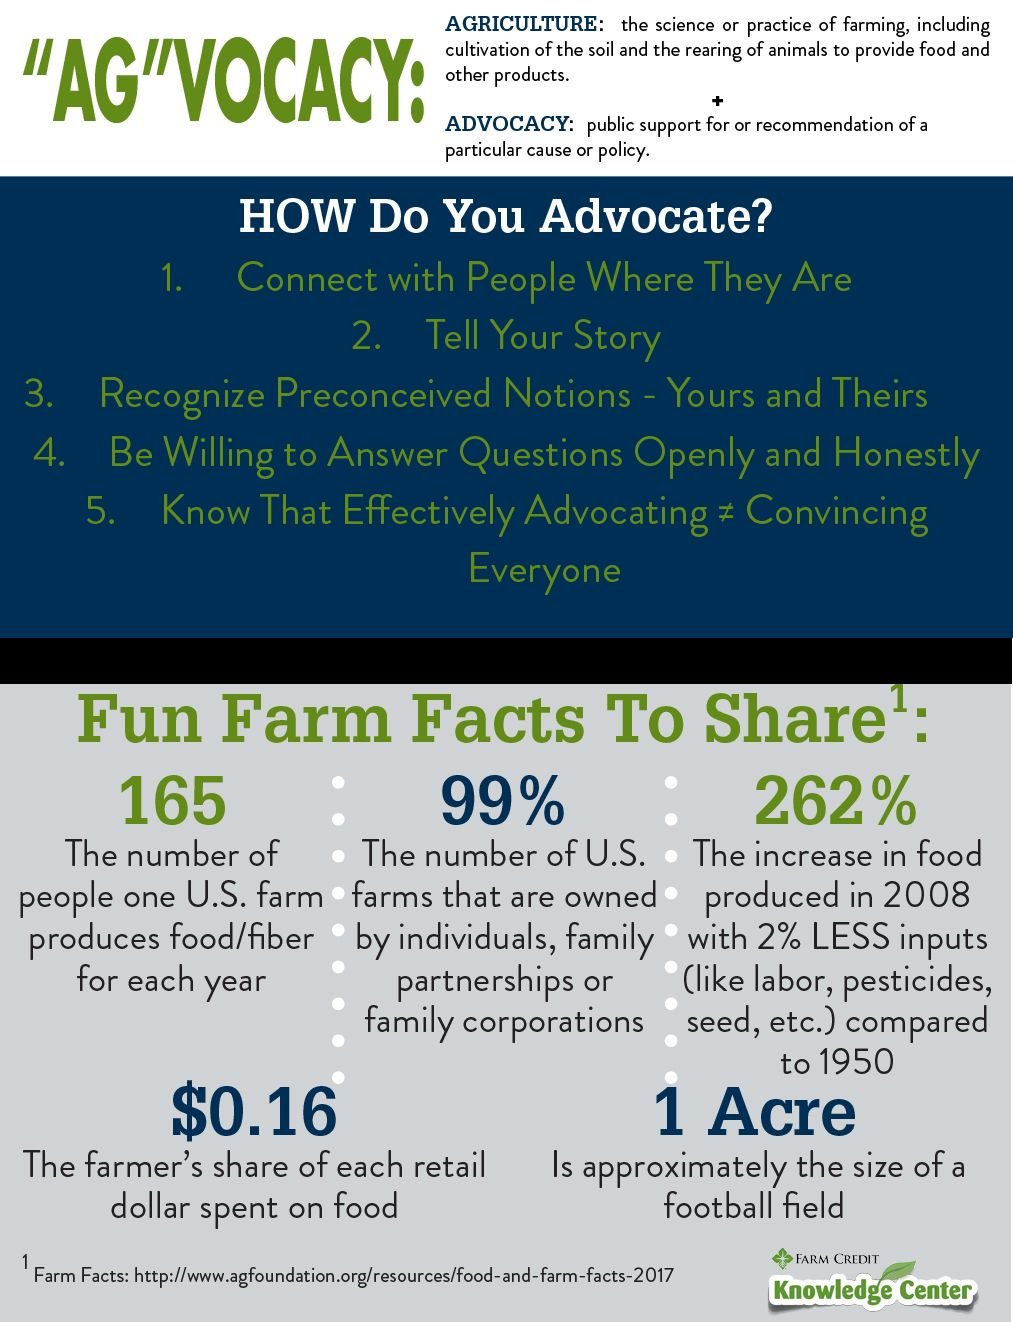 Pin by Farm Credit of the Virginias on Ag Facts Advocate